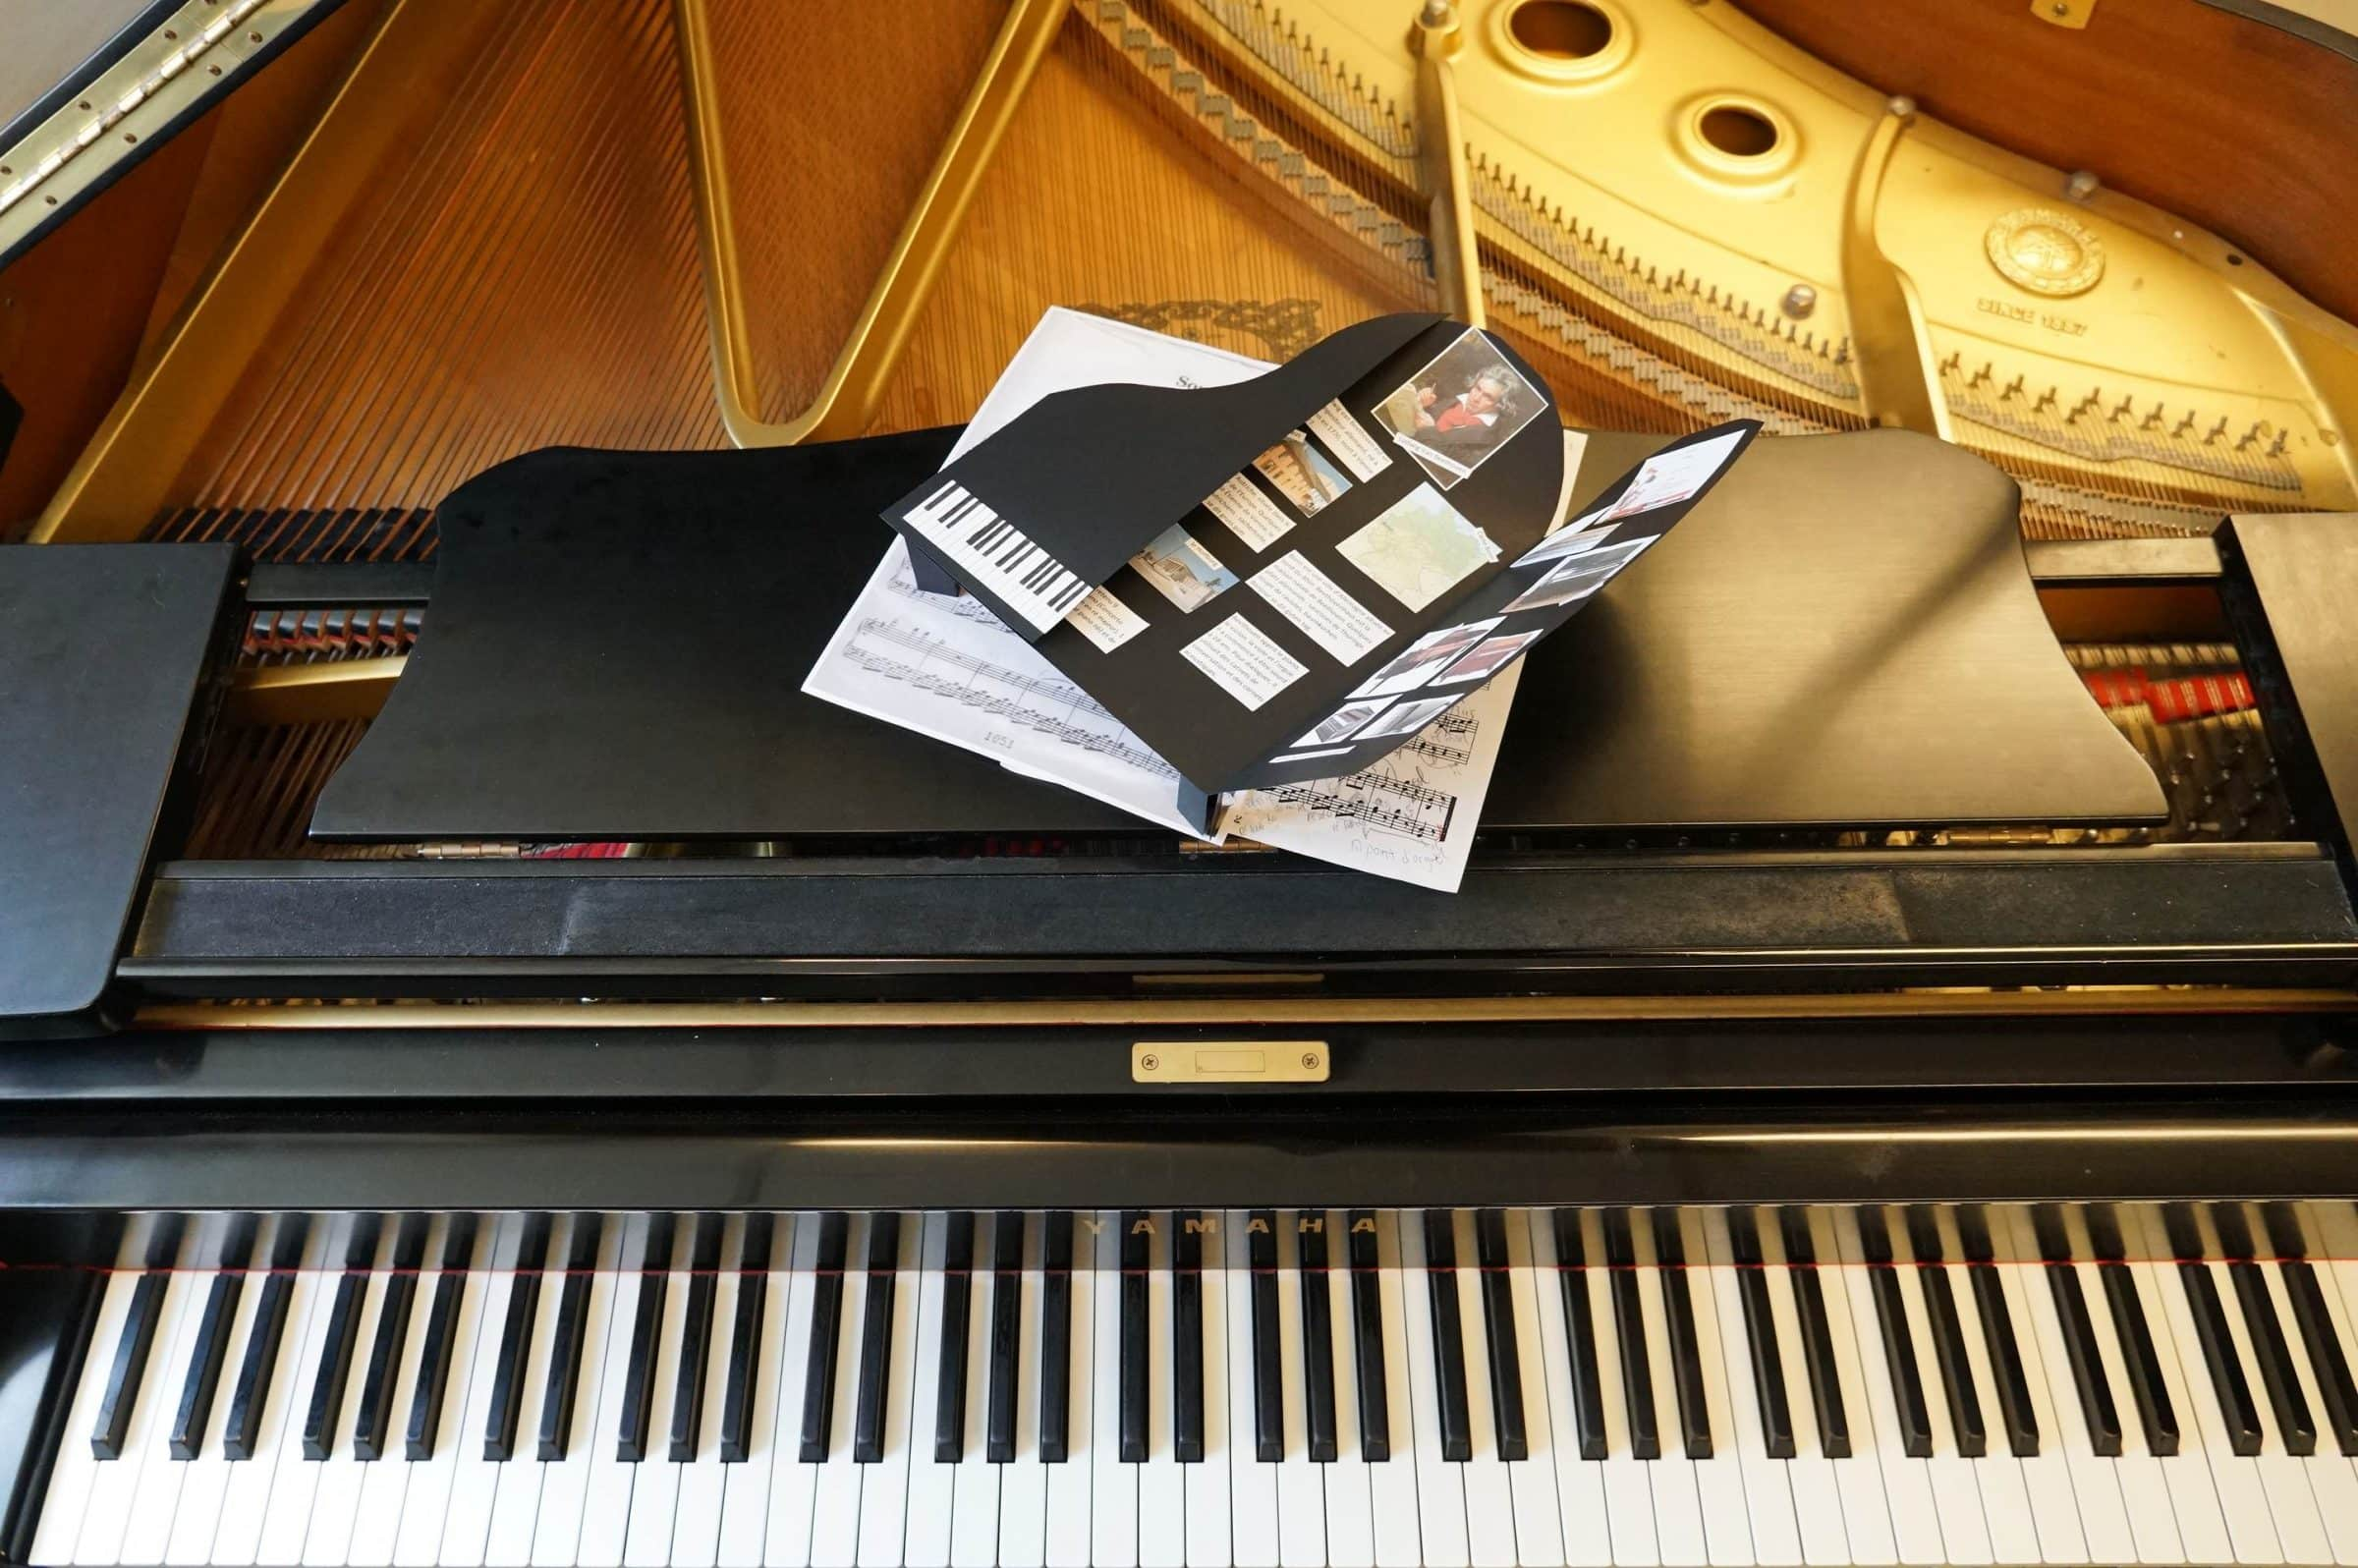 Beethoven piano lapbook